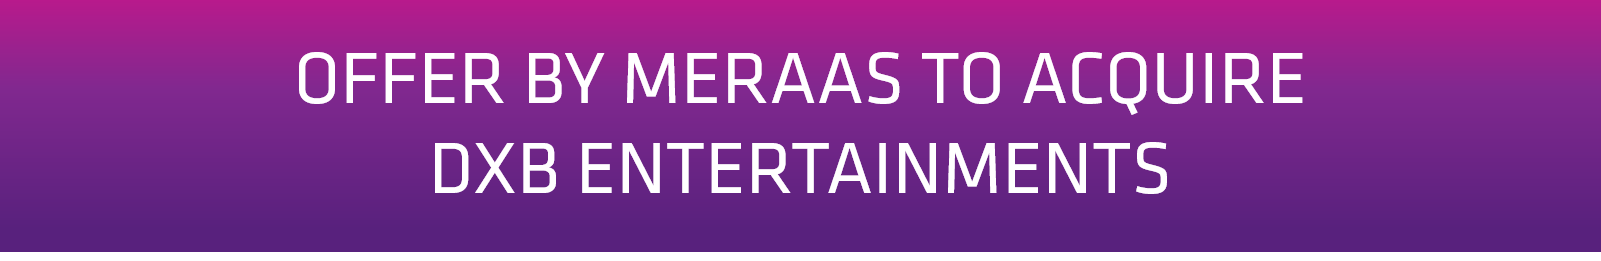 Offer by Meraas to acquire DXB Entertainments